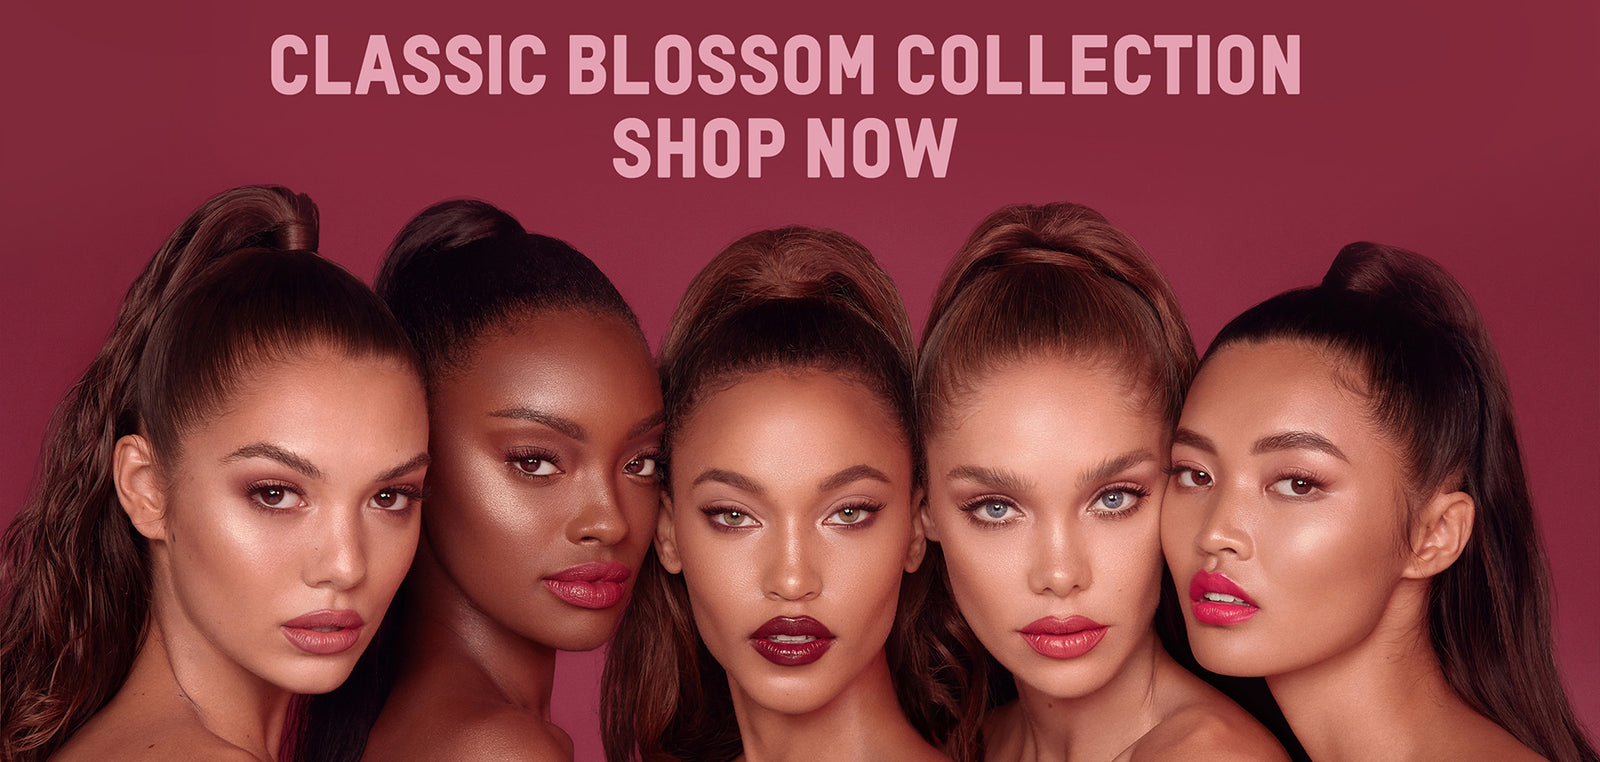 Classic Blossom Collection